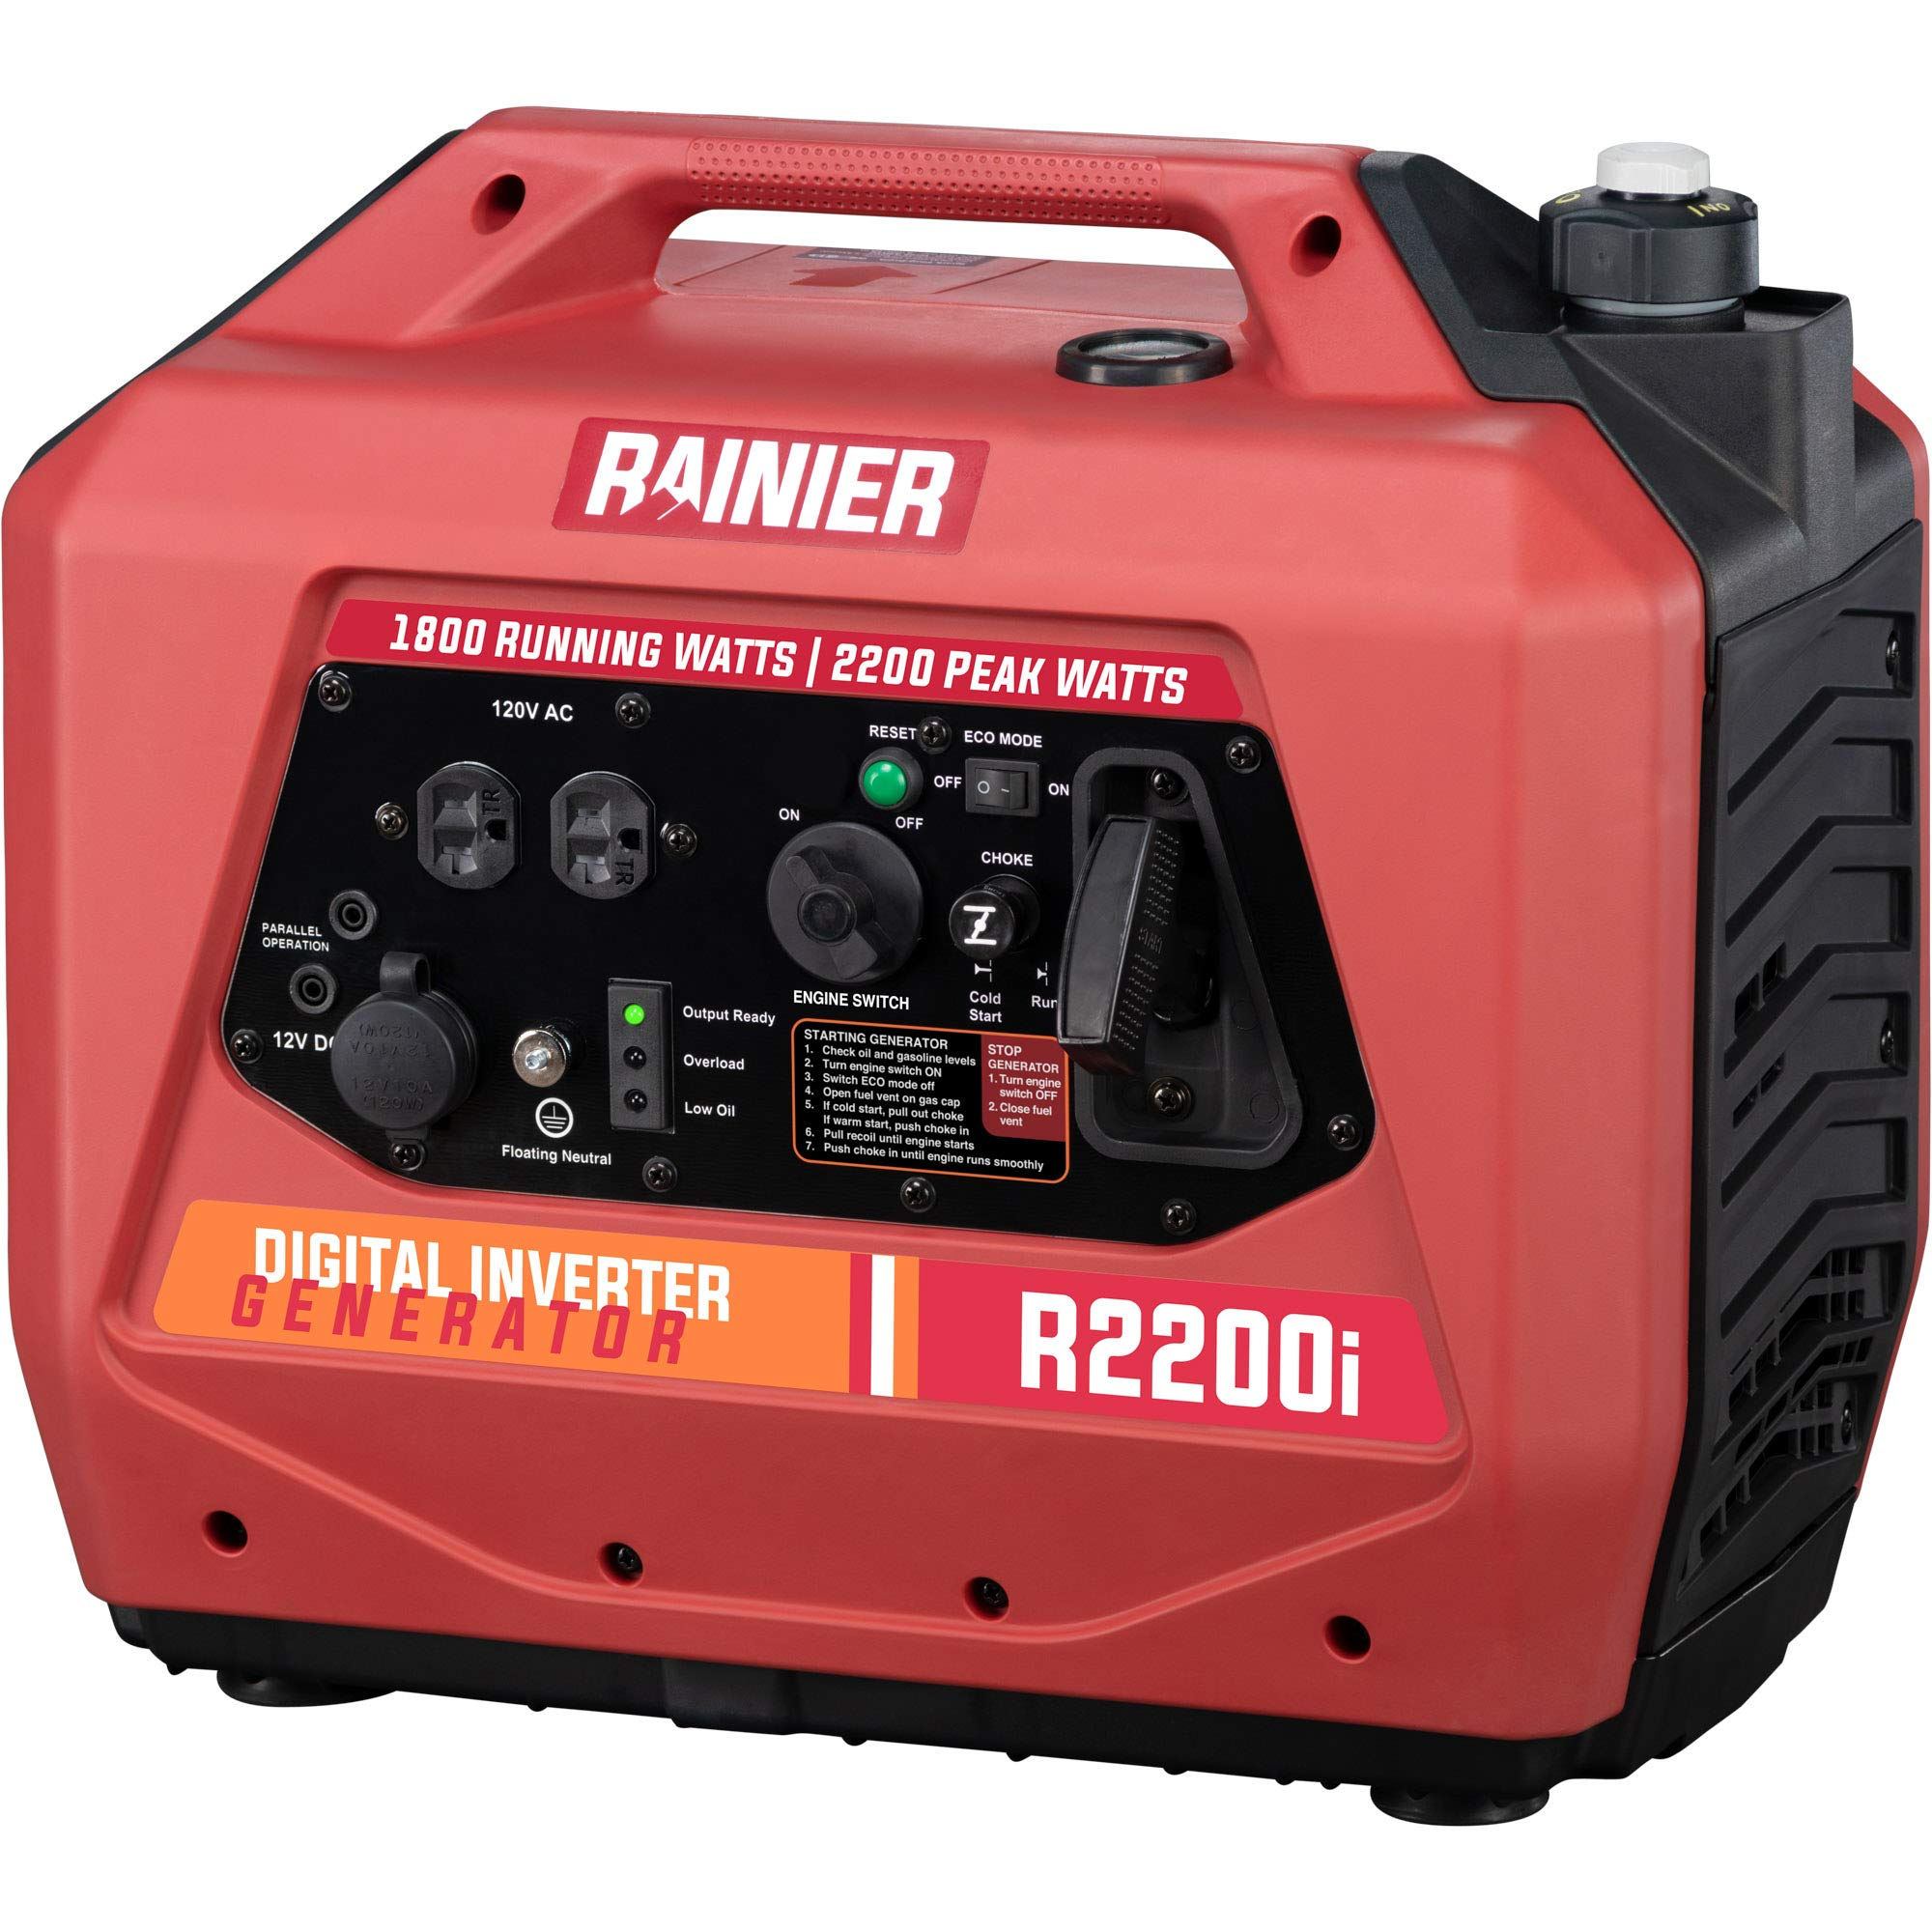 Rainier R2200i Super Quiet Portable Power Station Outdoor